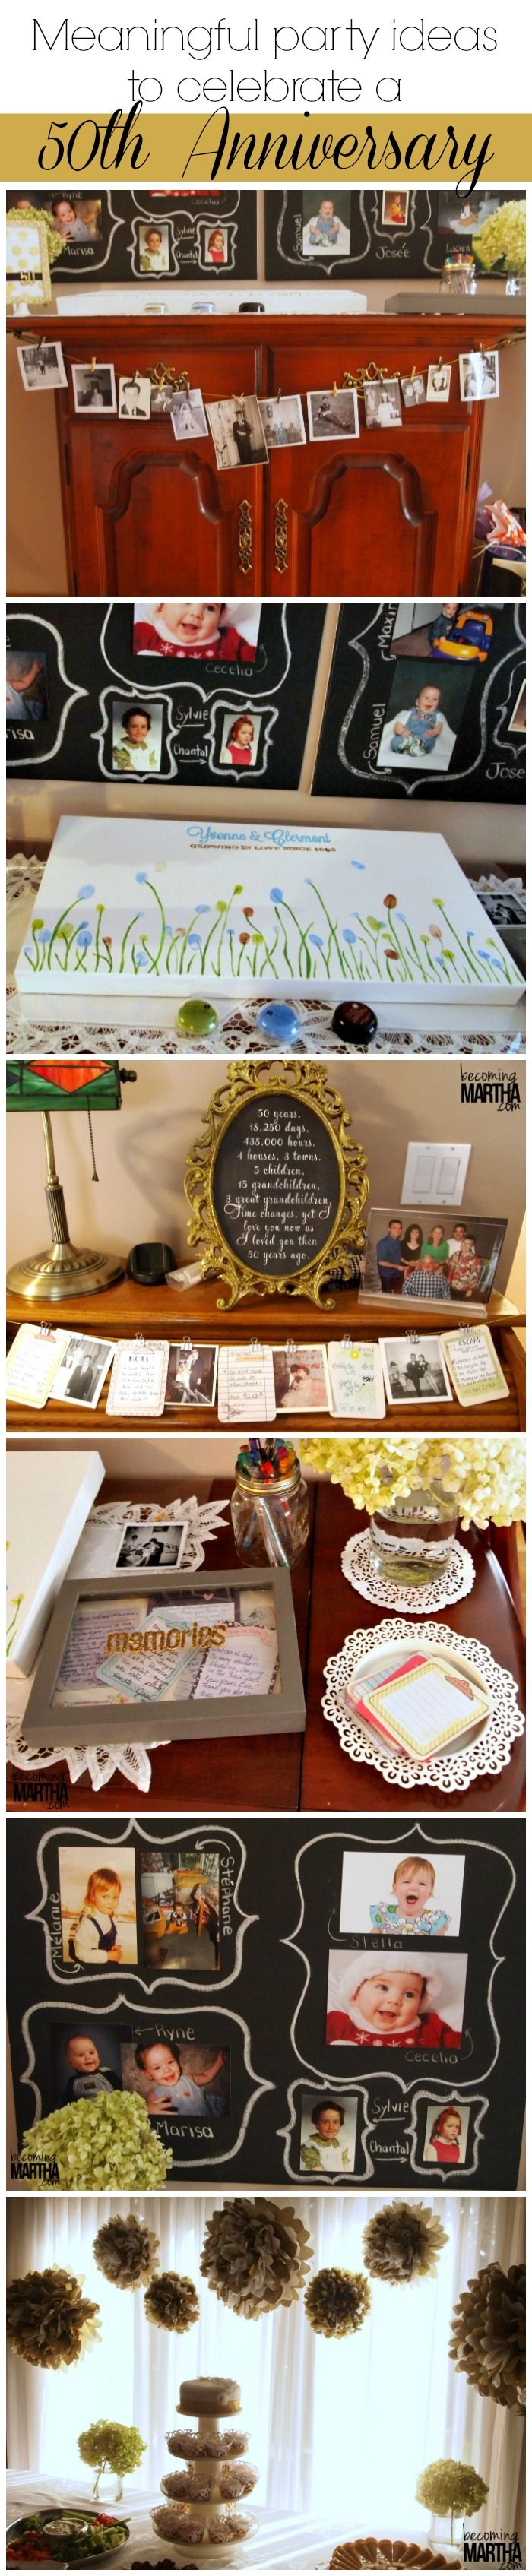 Meaningful Ideas for a 50th Anniversary Celebration - Becoming Martha